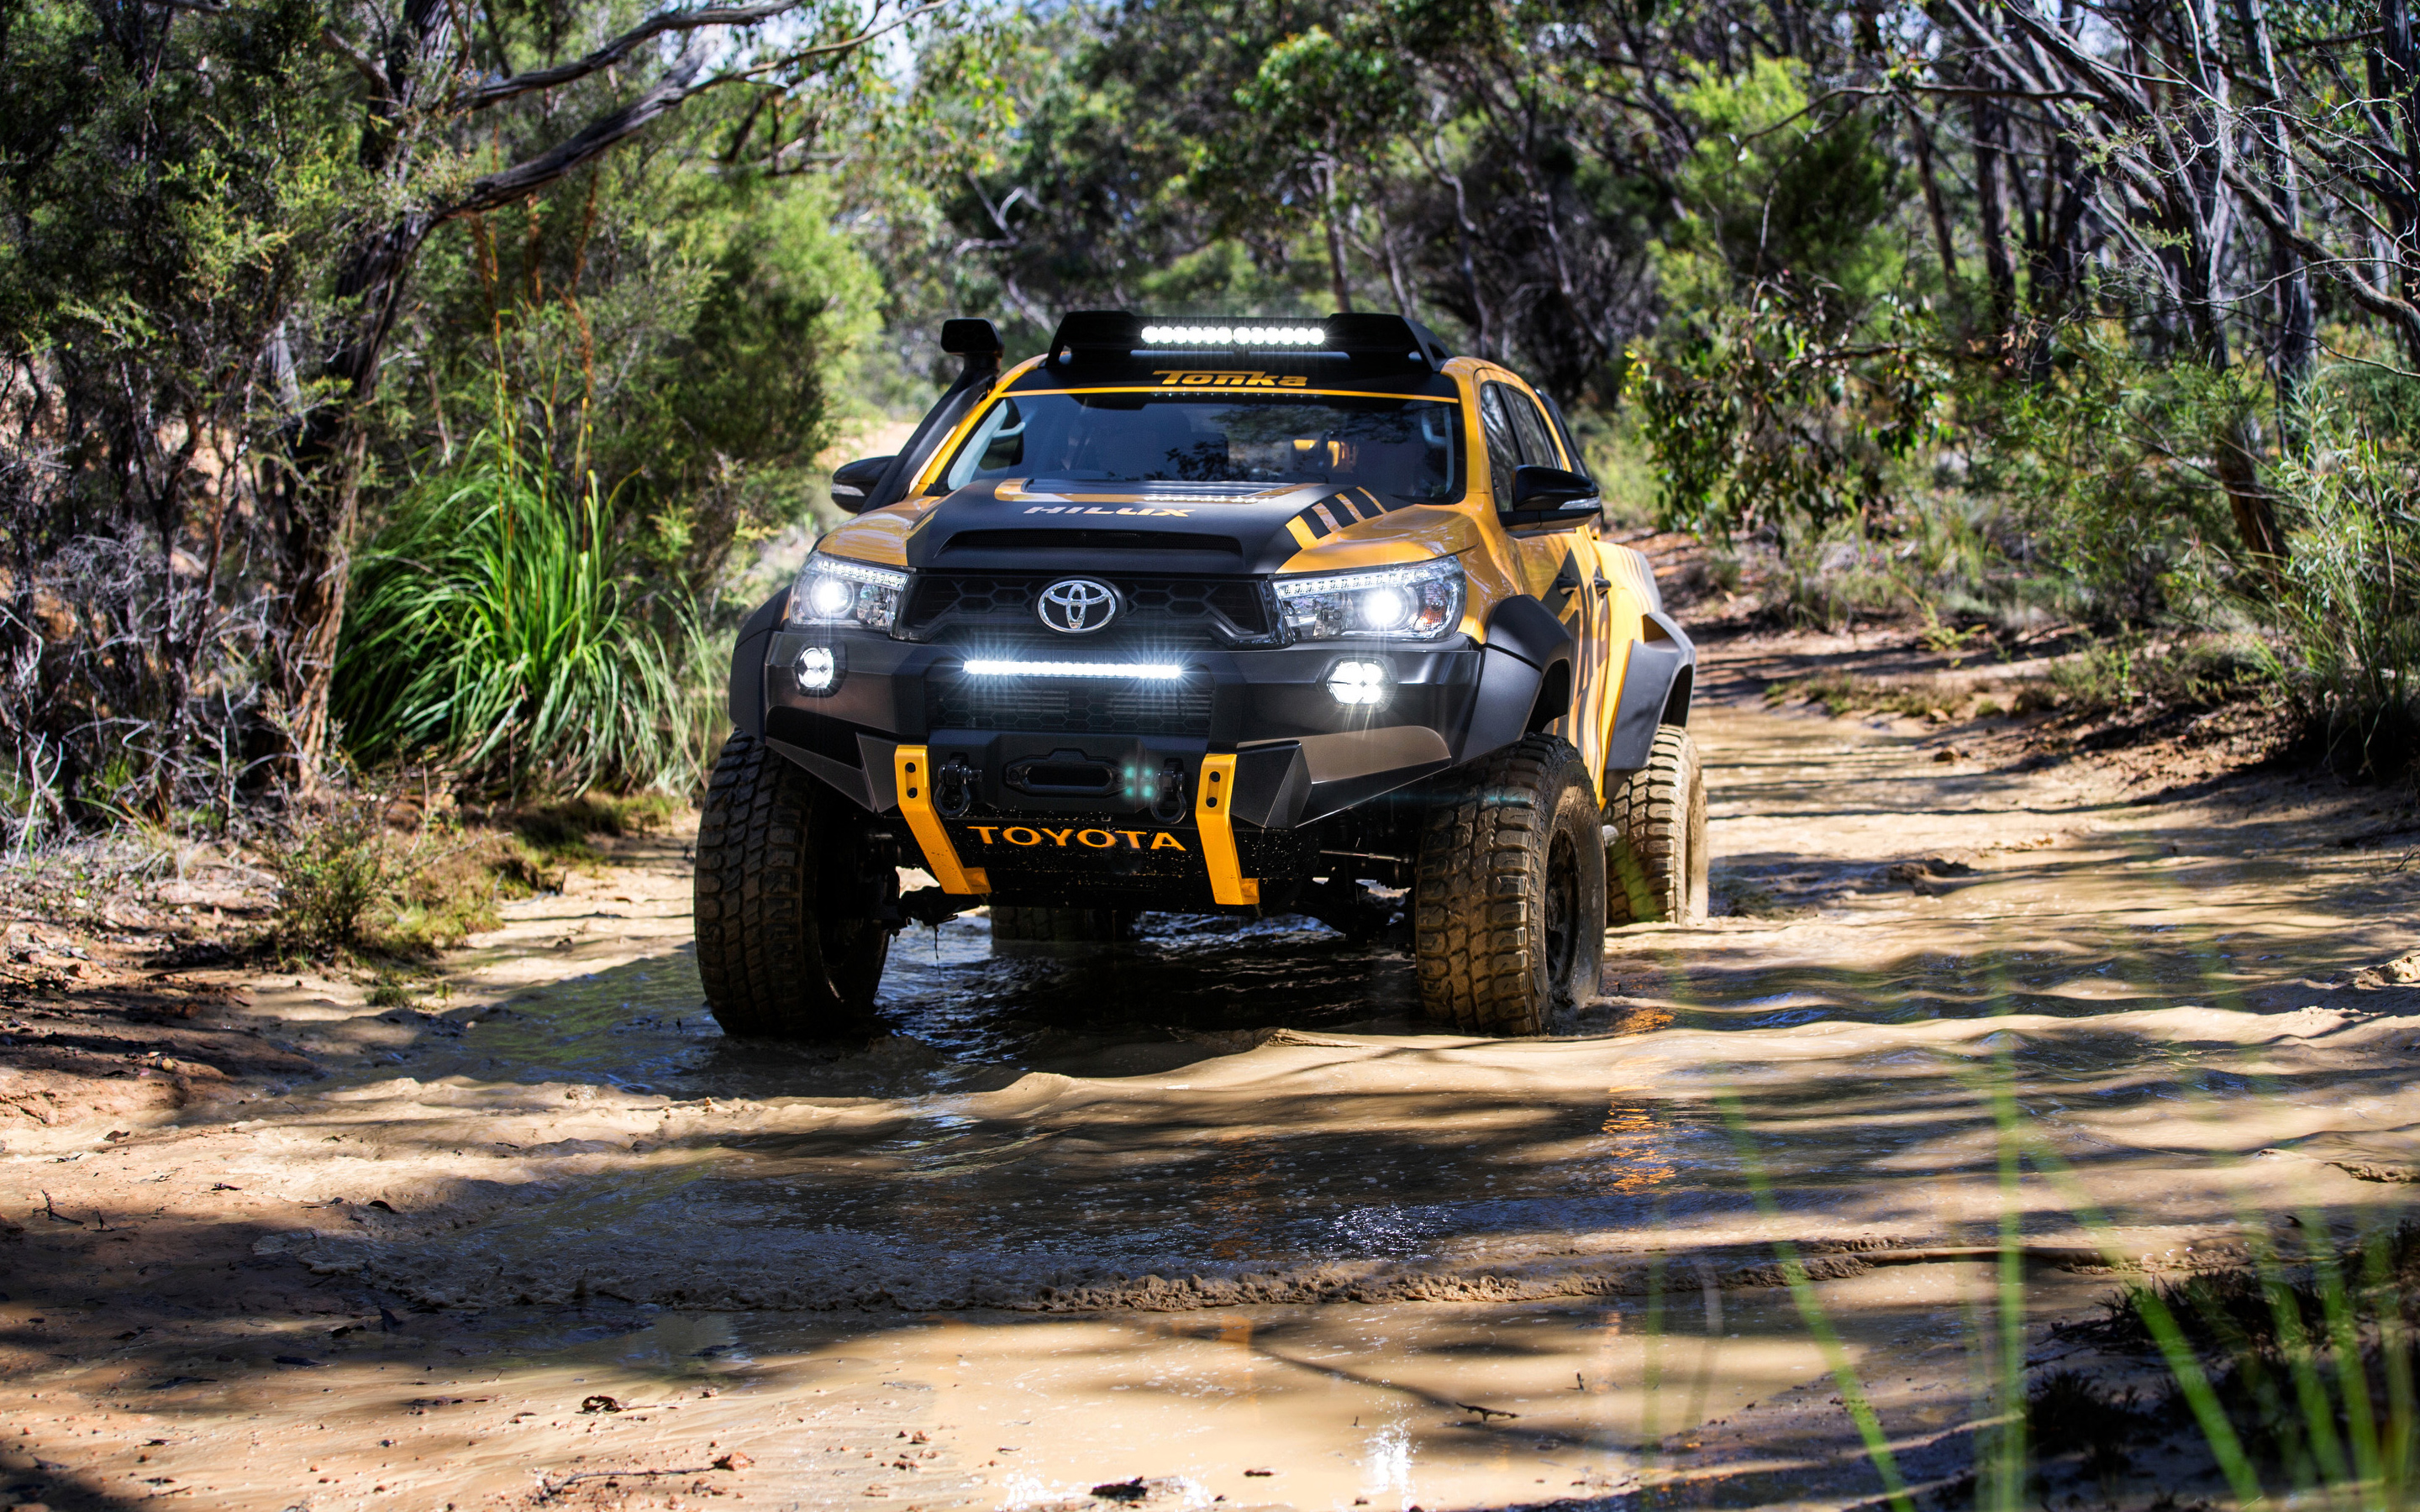 Concept Toyota Hilux   Toyota Hilux 504242   HD Wallpaper Download 2880x1800